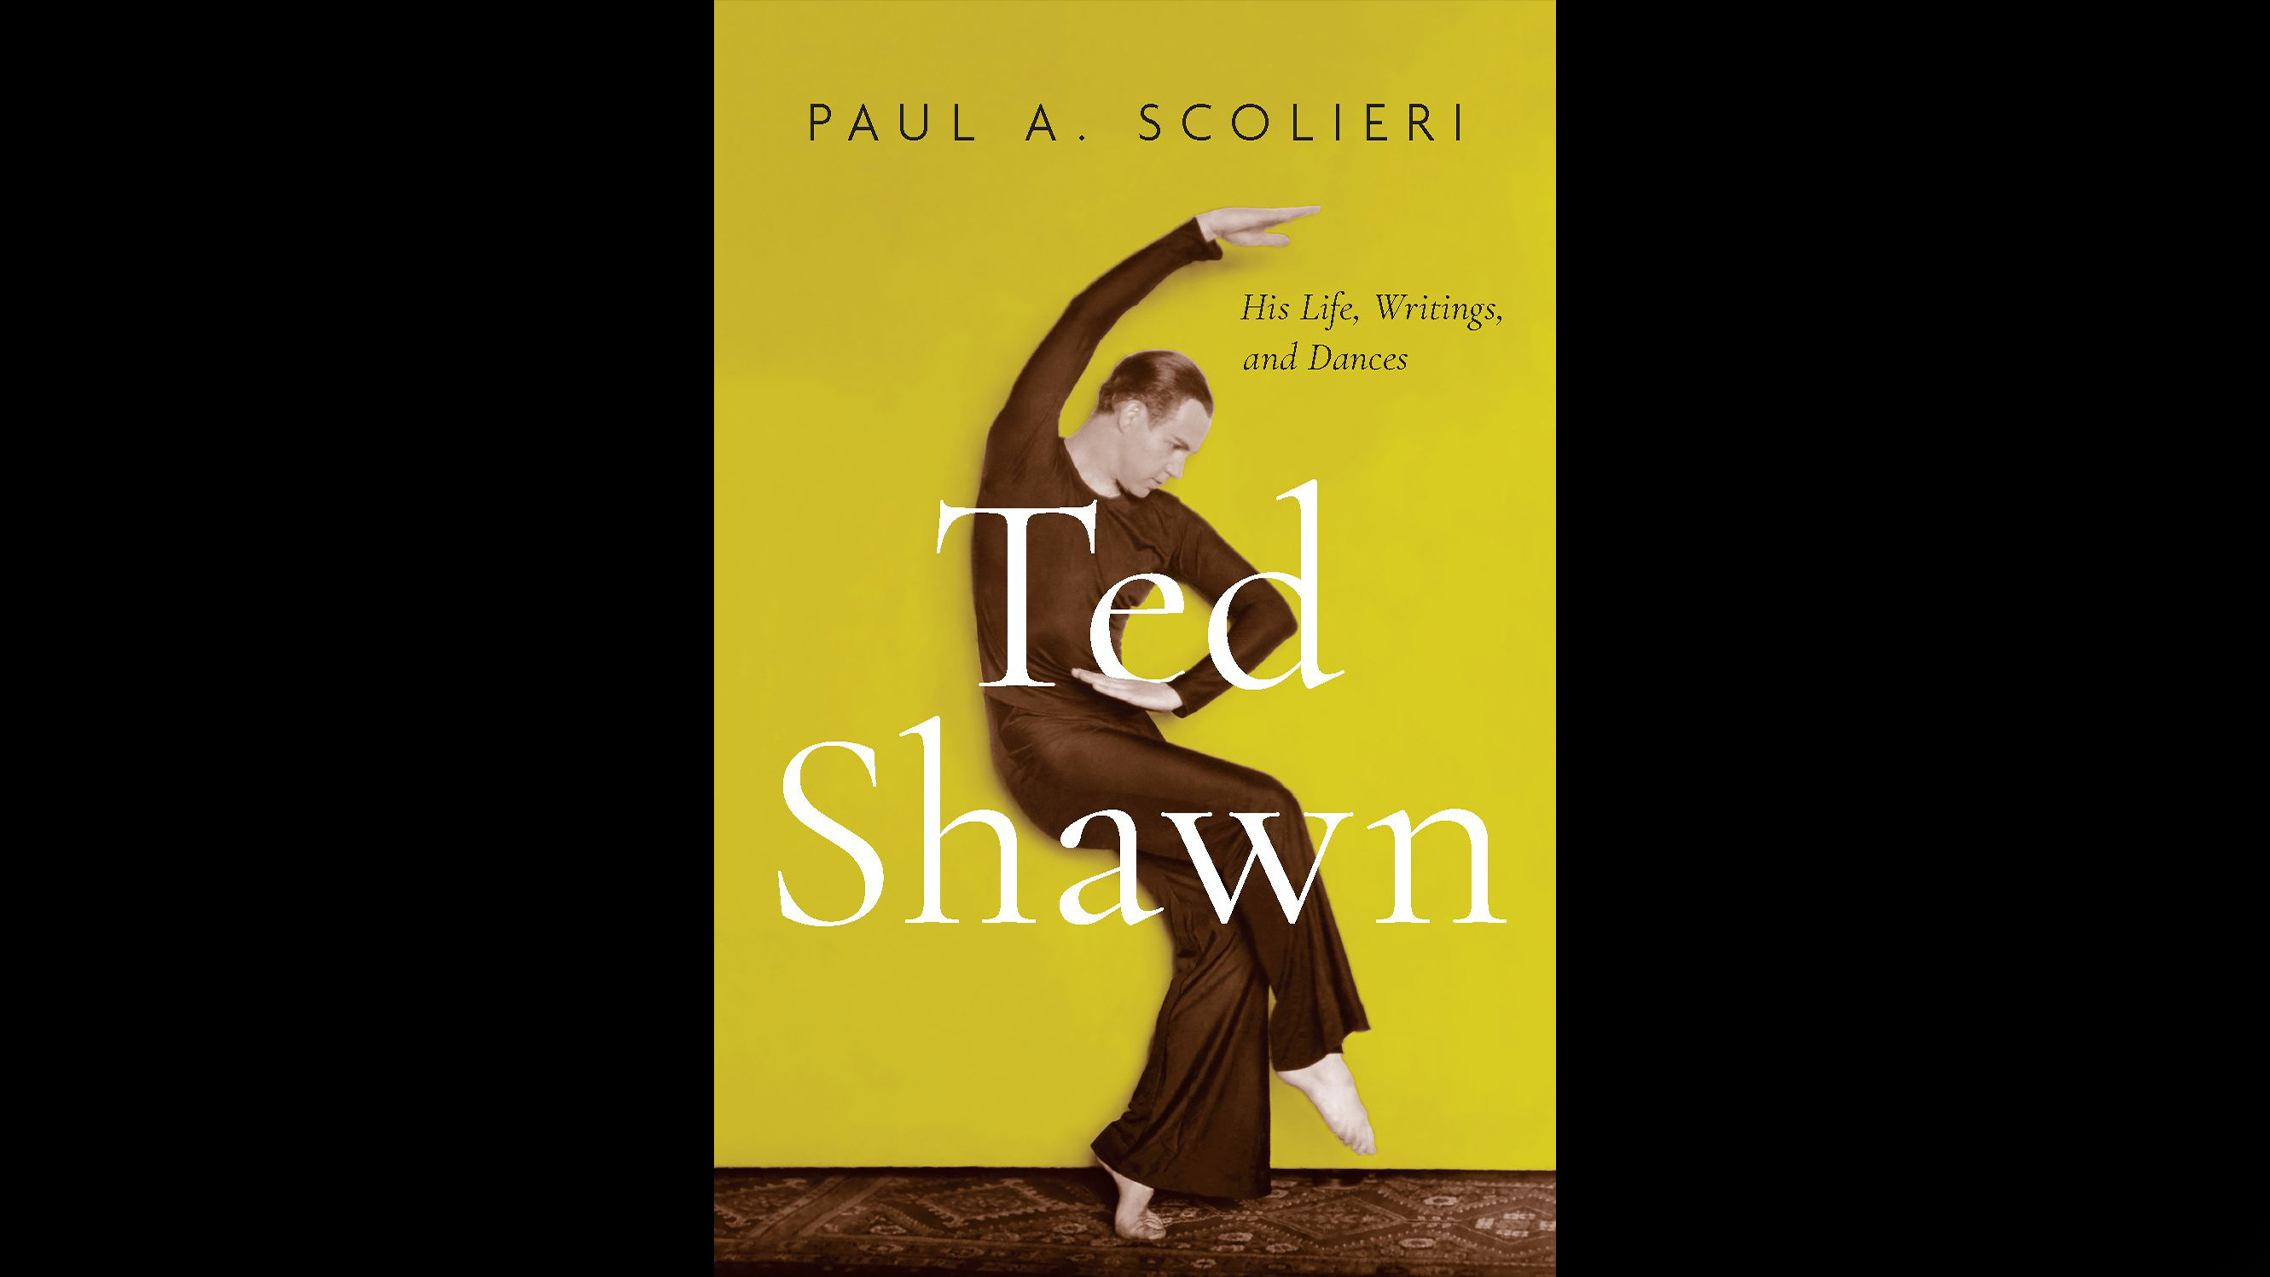 Ted Shawn biography by Paul A. Scolieri